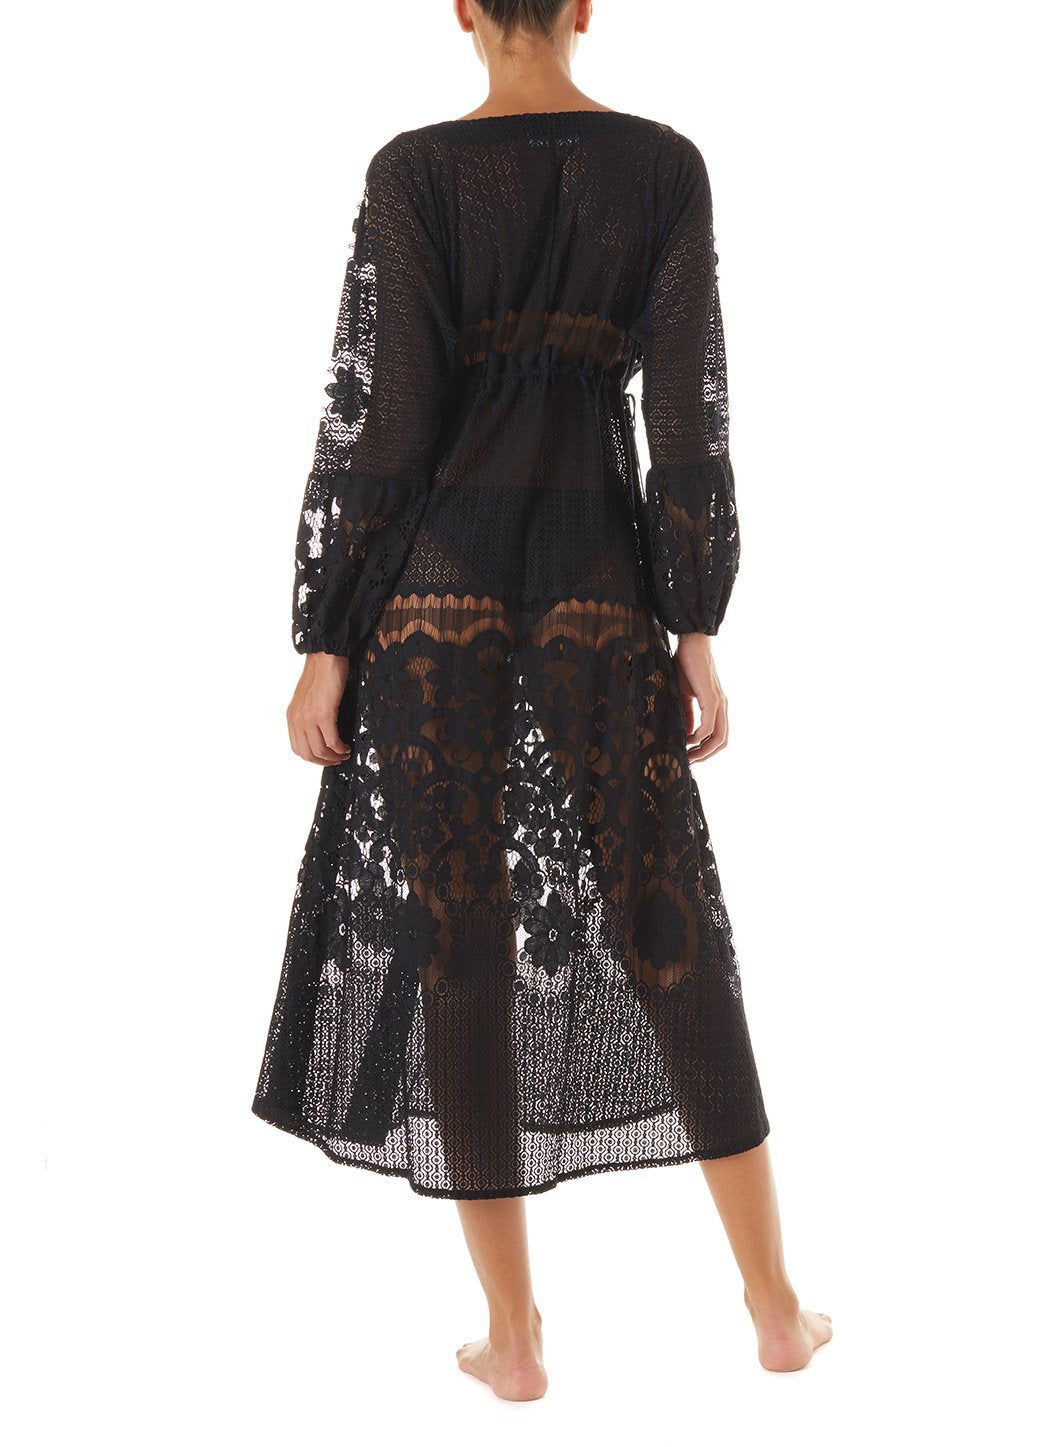 melissa black lace tieside midi dress 2019 B